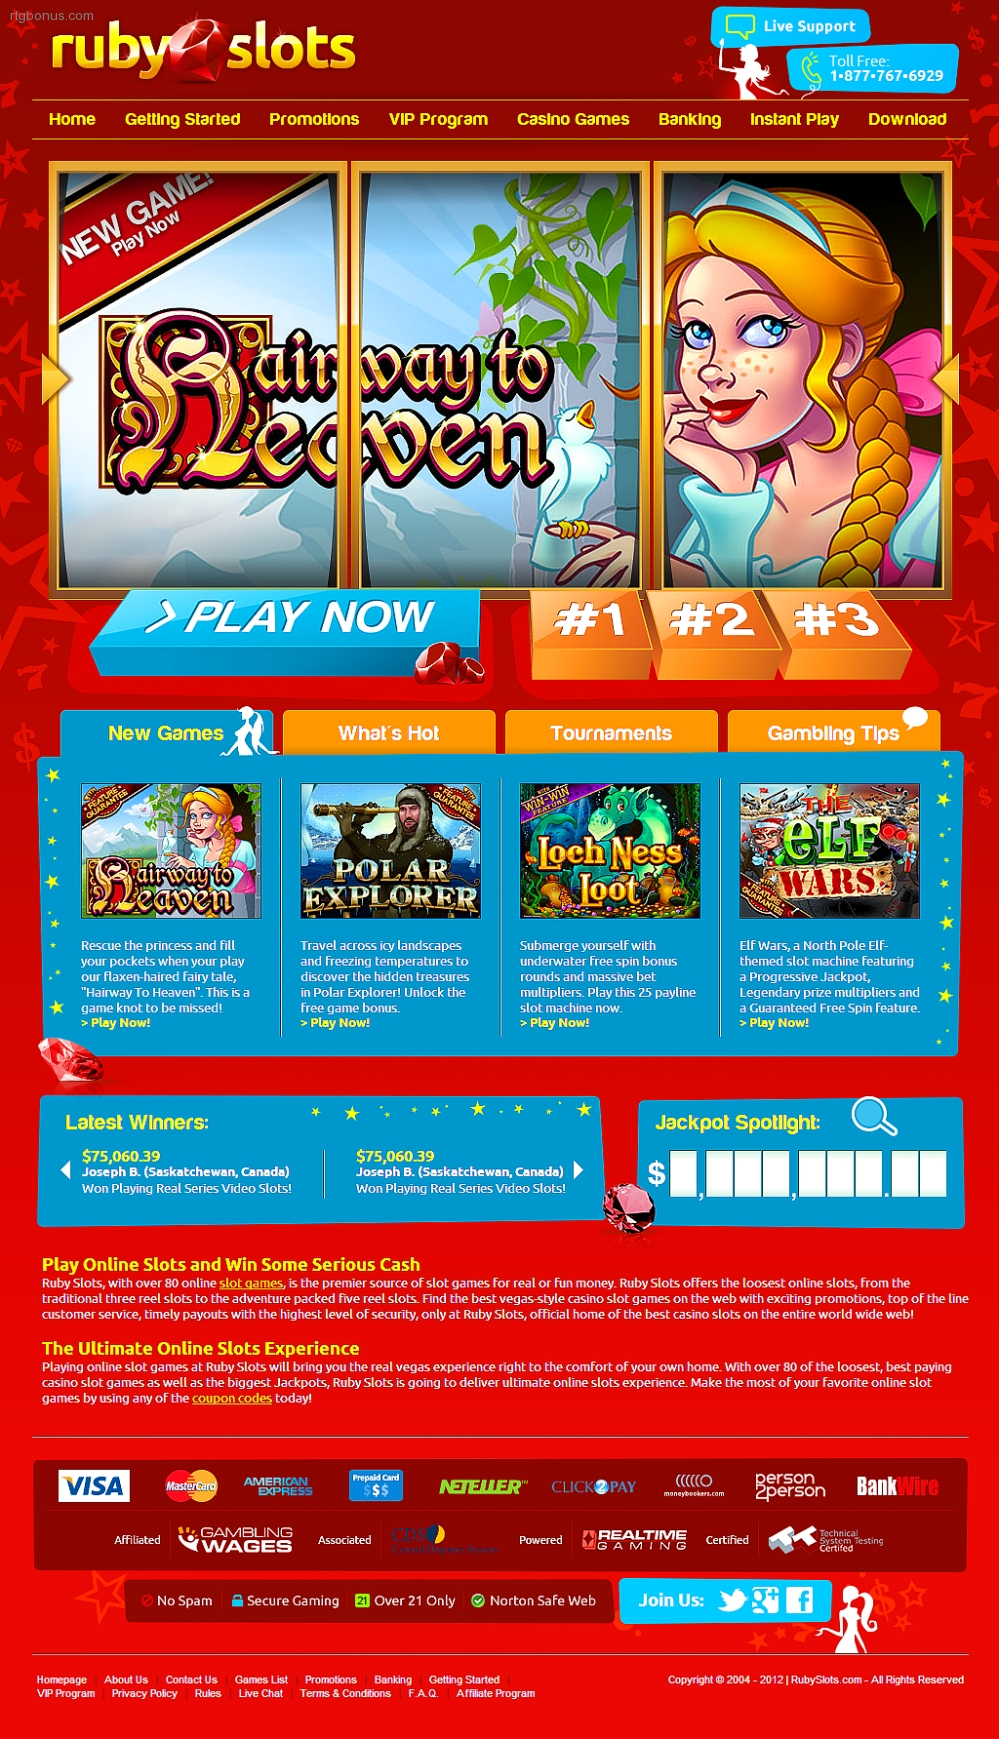 ruby slots casino no deposit bonus codes